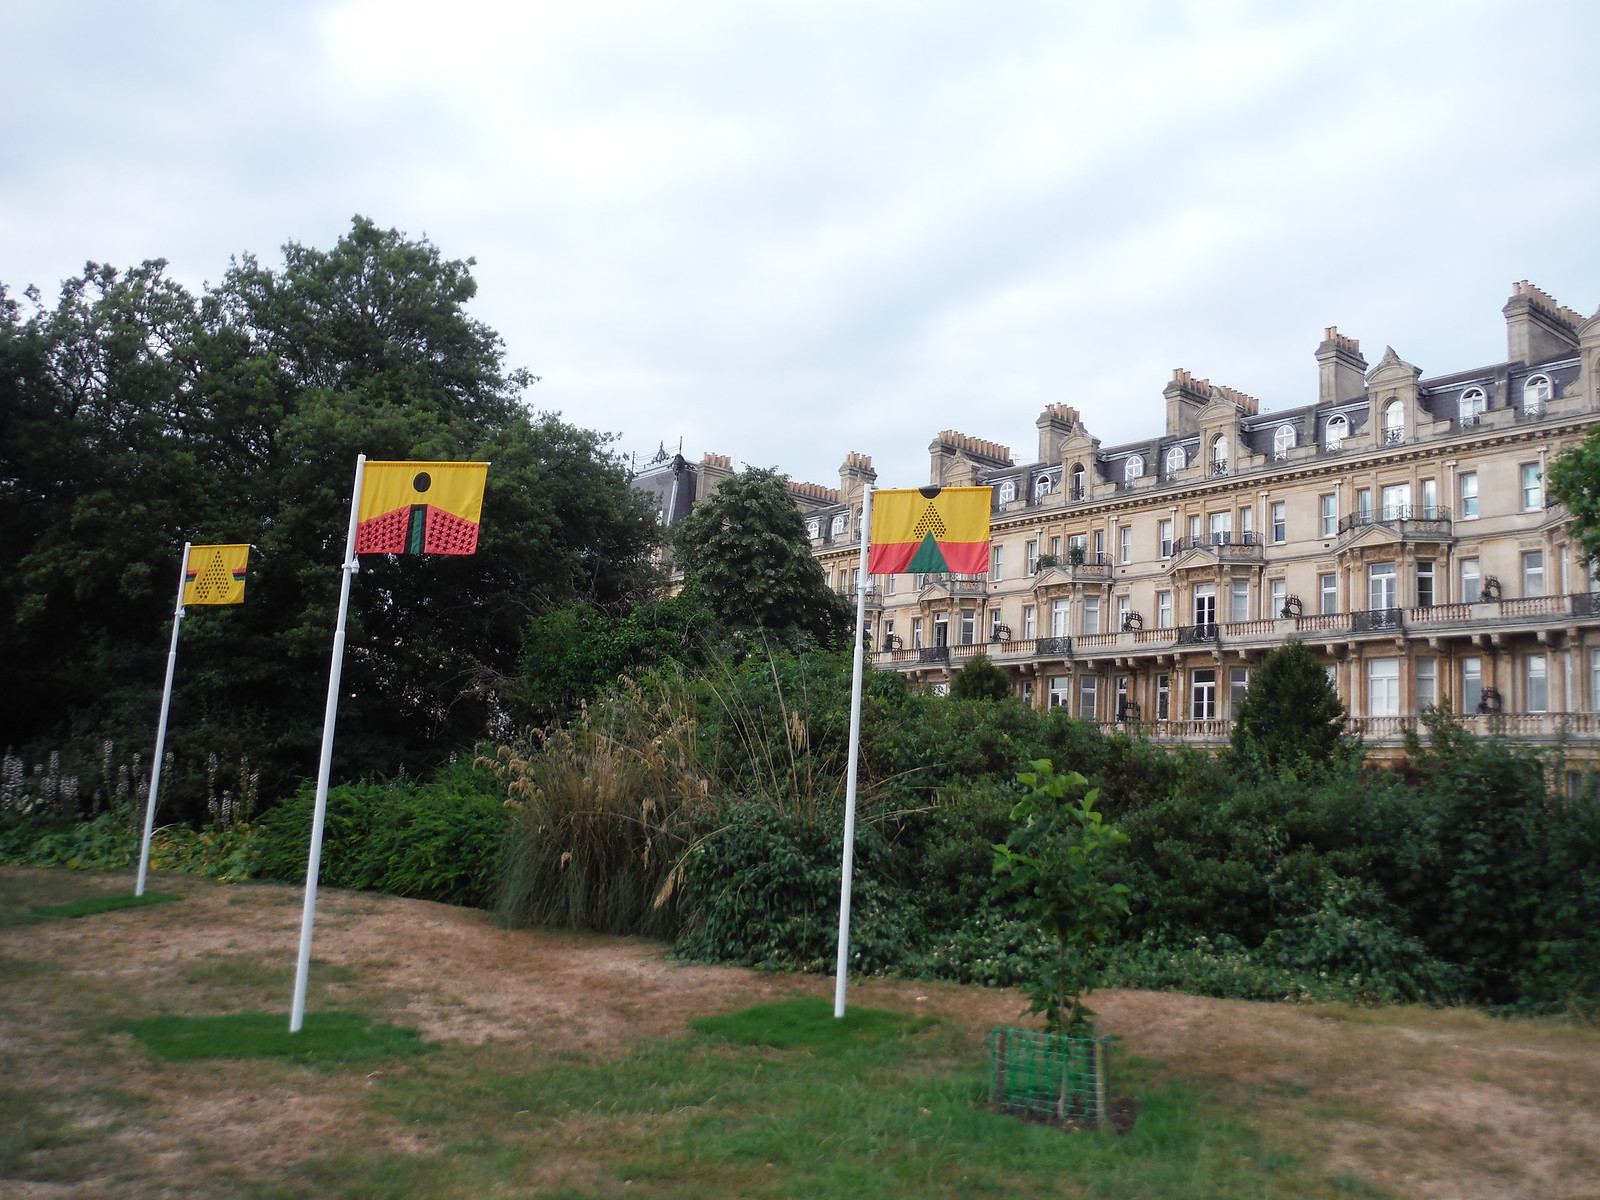 Frieze Sculpture Park 2018: Larry Achiampong, 'PAN AFRICAN FLAGS FOR THE RELIC TRAVELLERS' ALLIANCE' SWC Short Walk 6 - Regent's Park and Primrose Hill